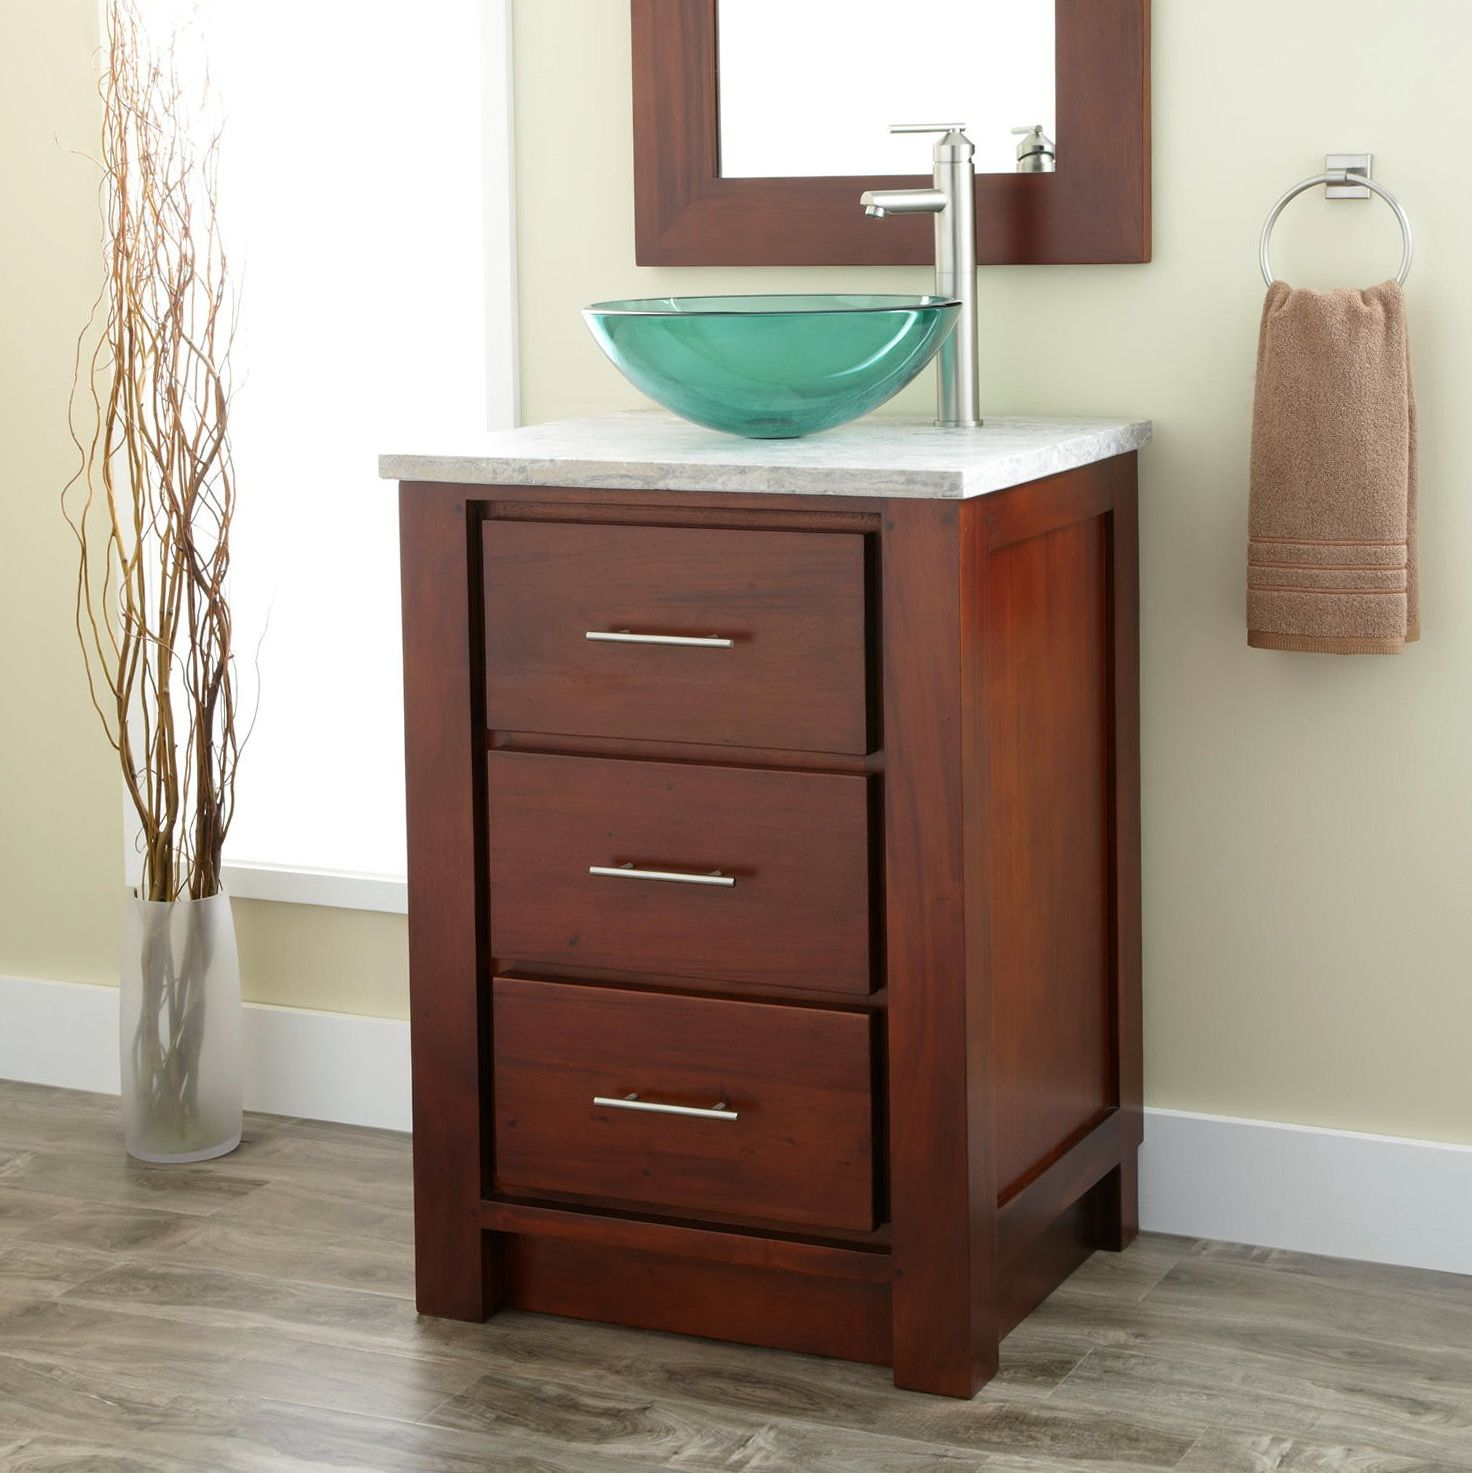 24 Inch Bathroom Vanity And Sink 24 inch bathroom vanity vessel sink | house | pinterest | bathroom